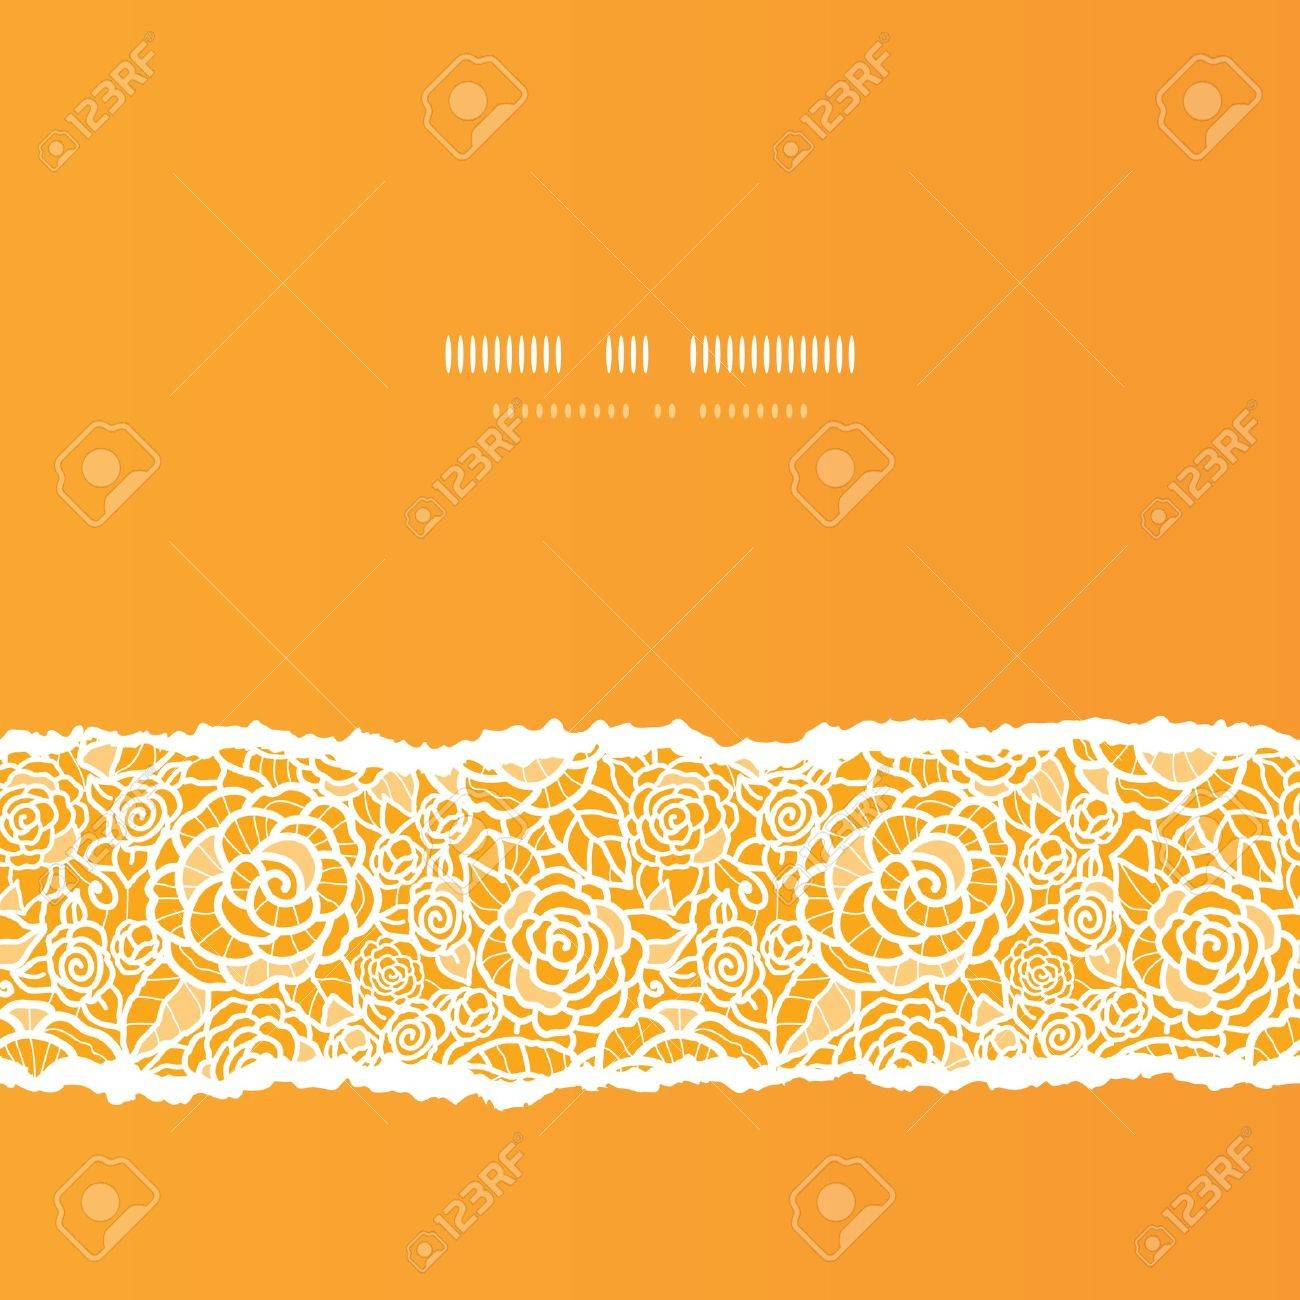 Golden lace roses torn square seamless pattern background Stock Vector - 18166826